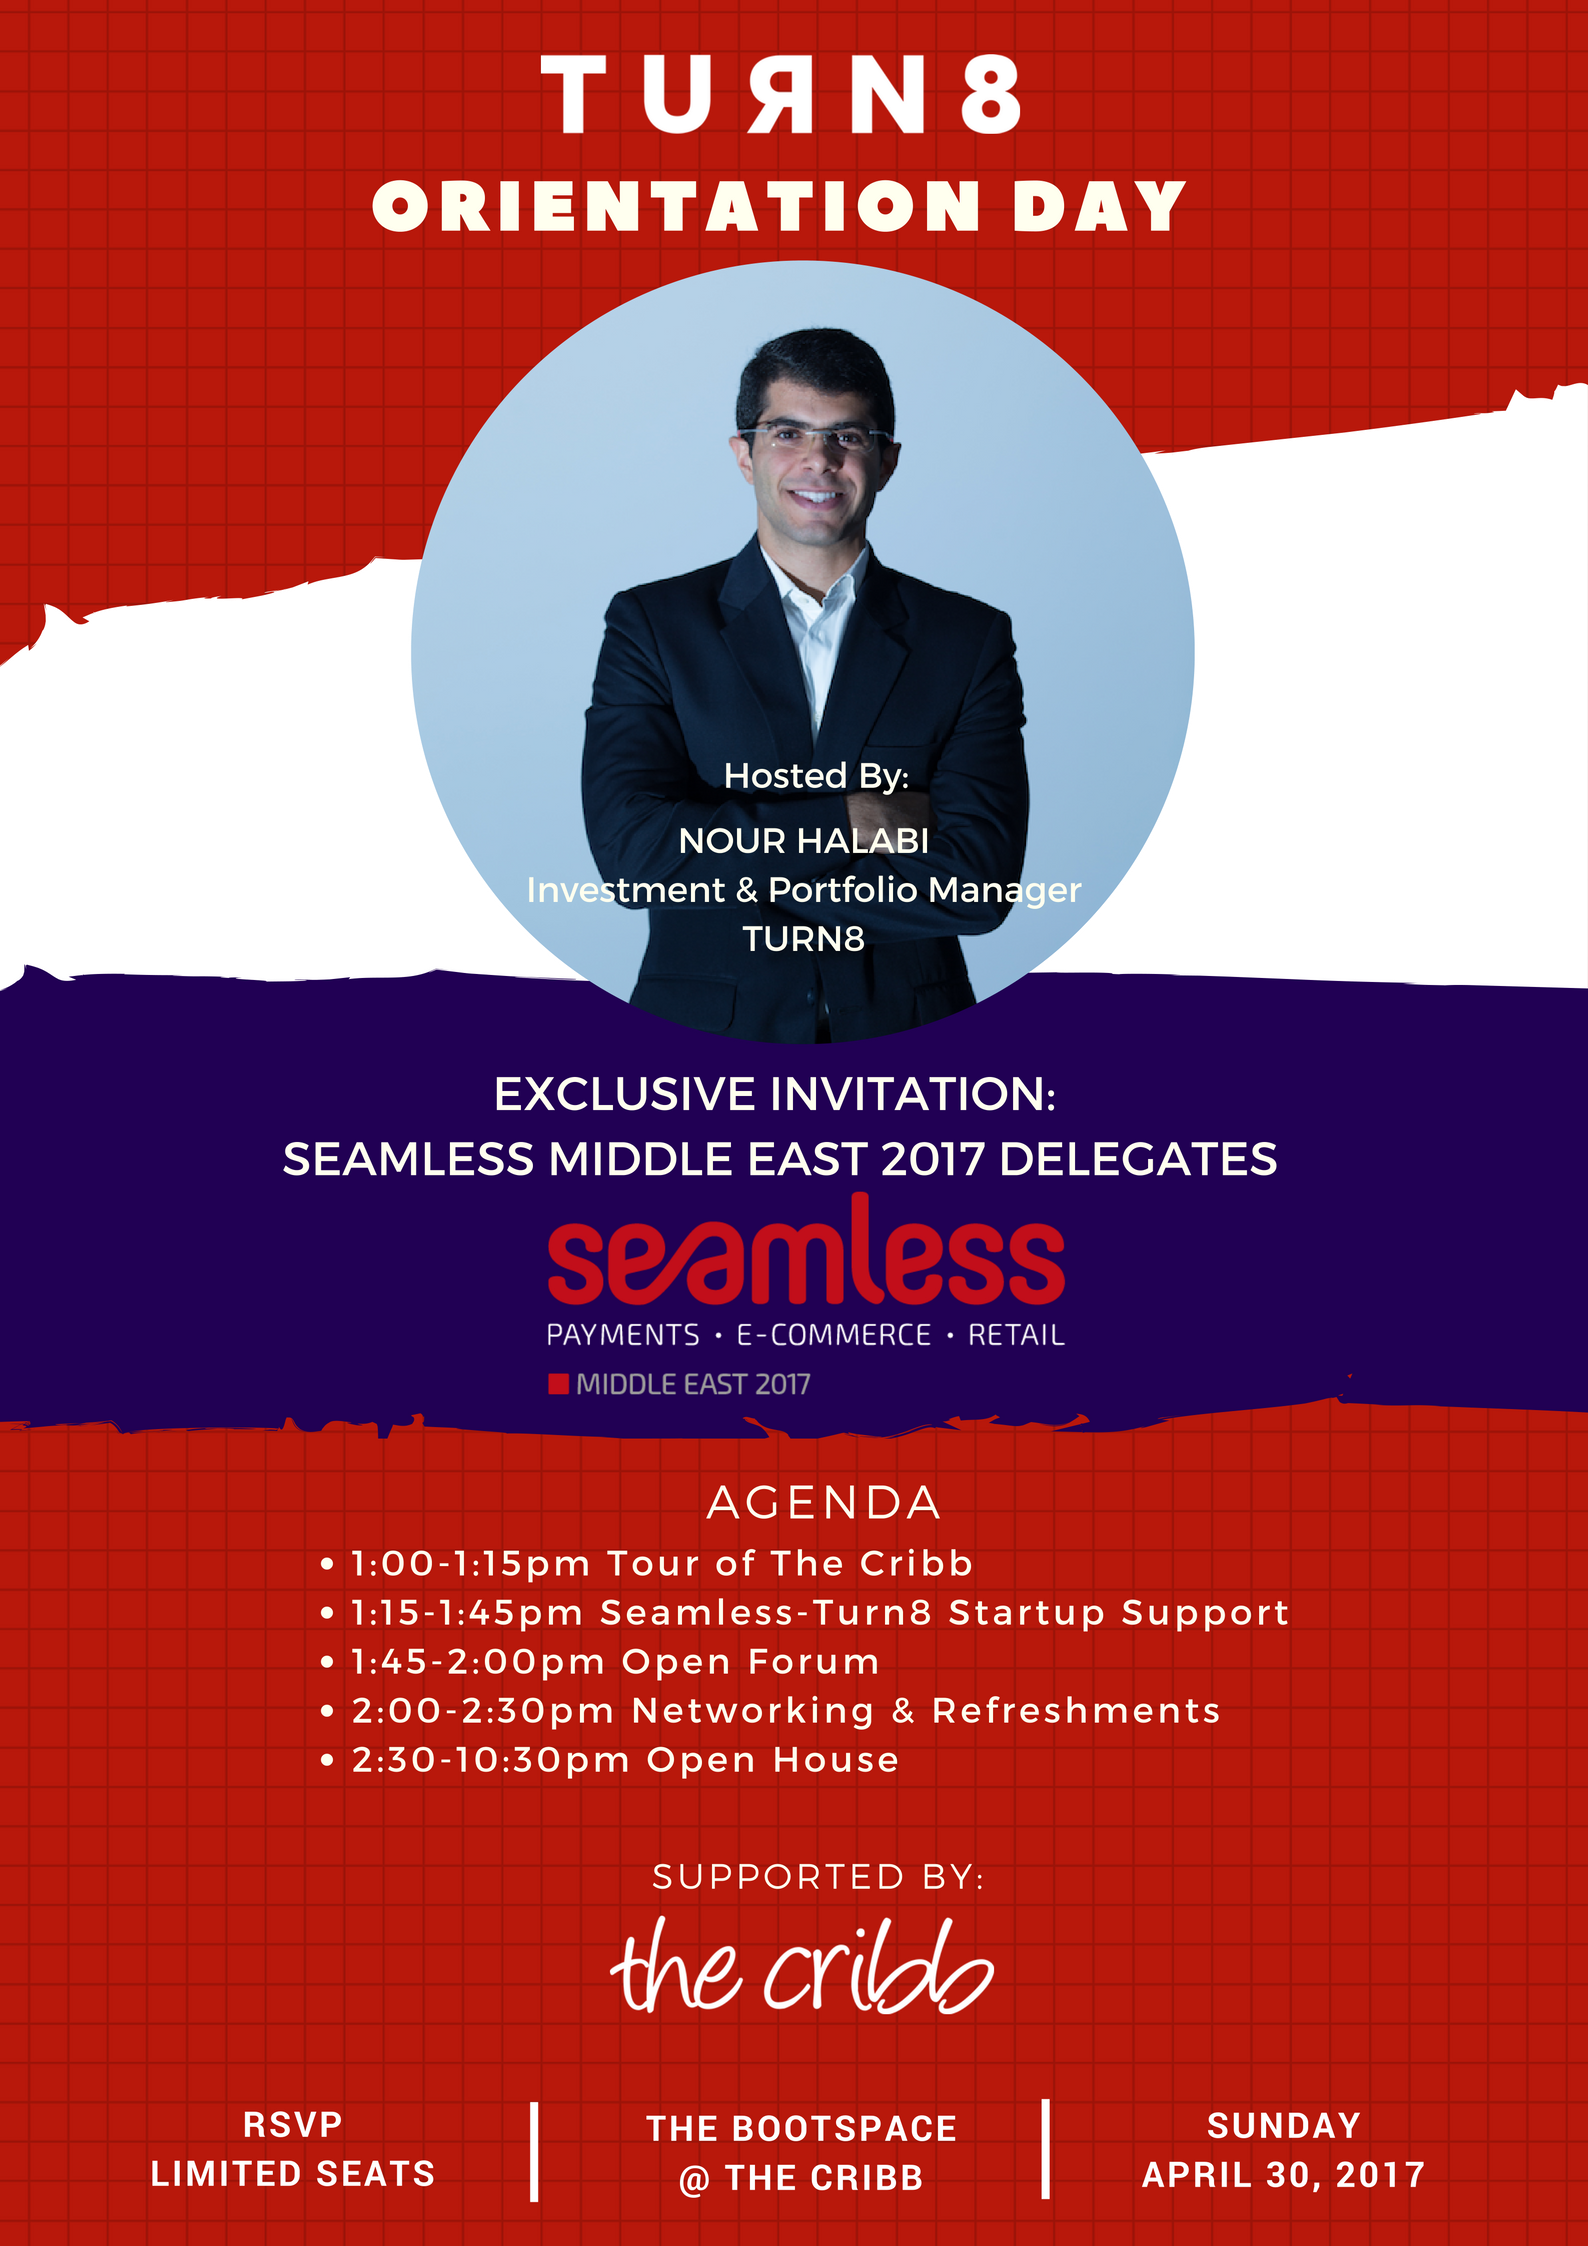 Turn8 Orientation Day & Open House: Exclusive Invitation to Seamless ME 2017 Delegates